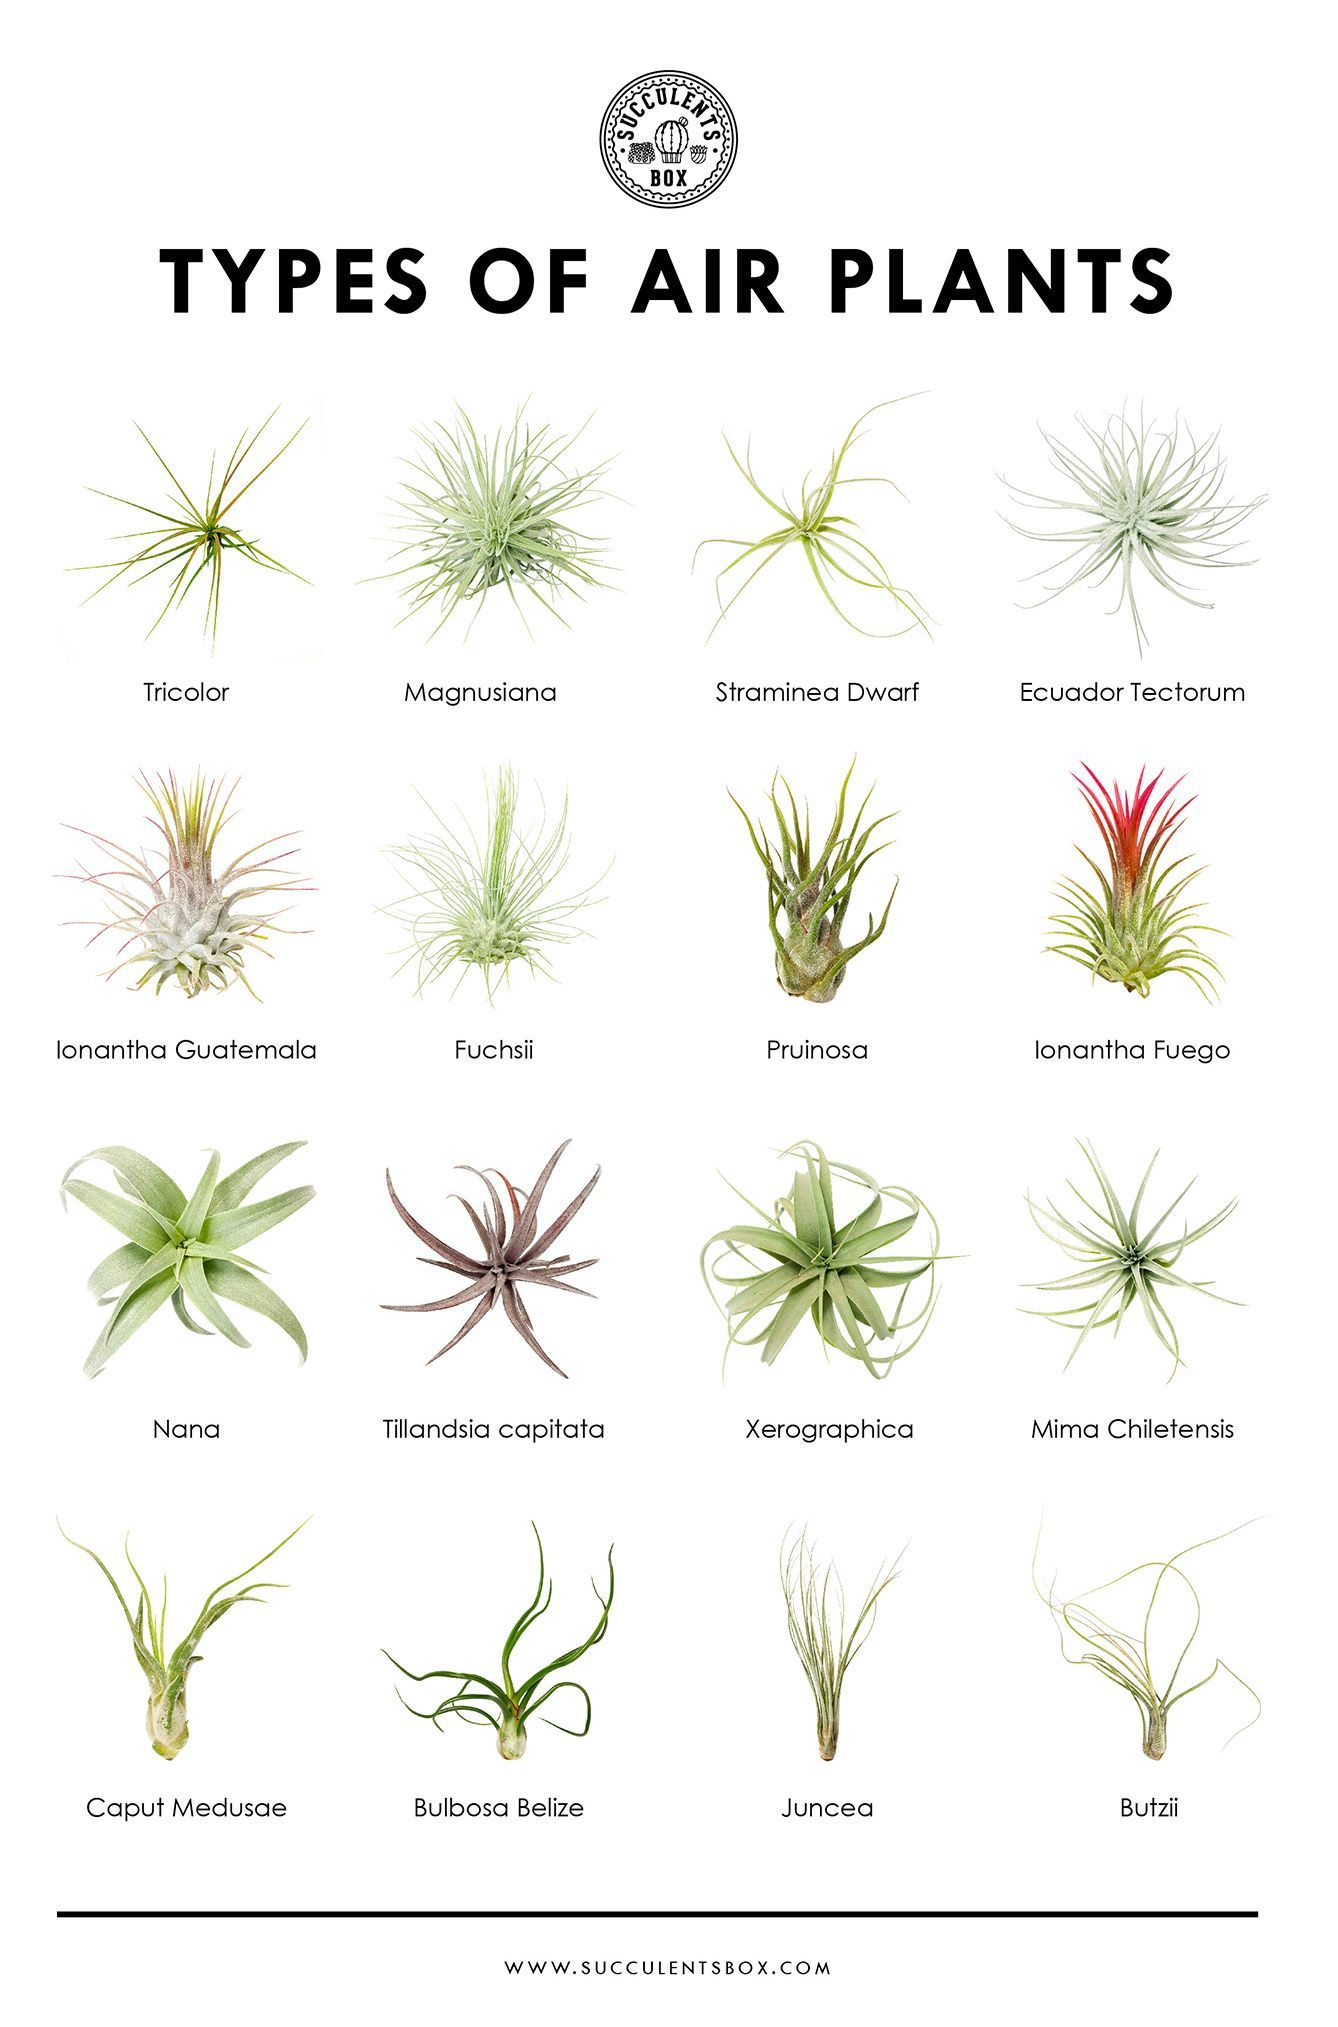 They Are Called Air Plants Because They Do Not Root In Soil